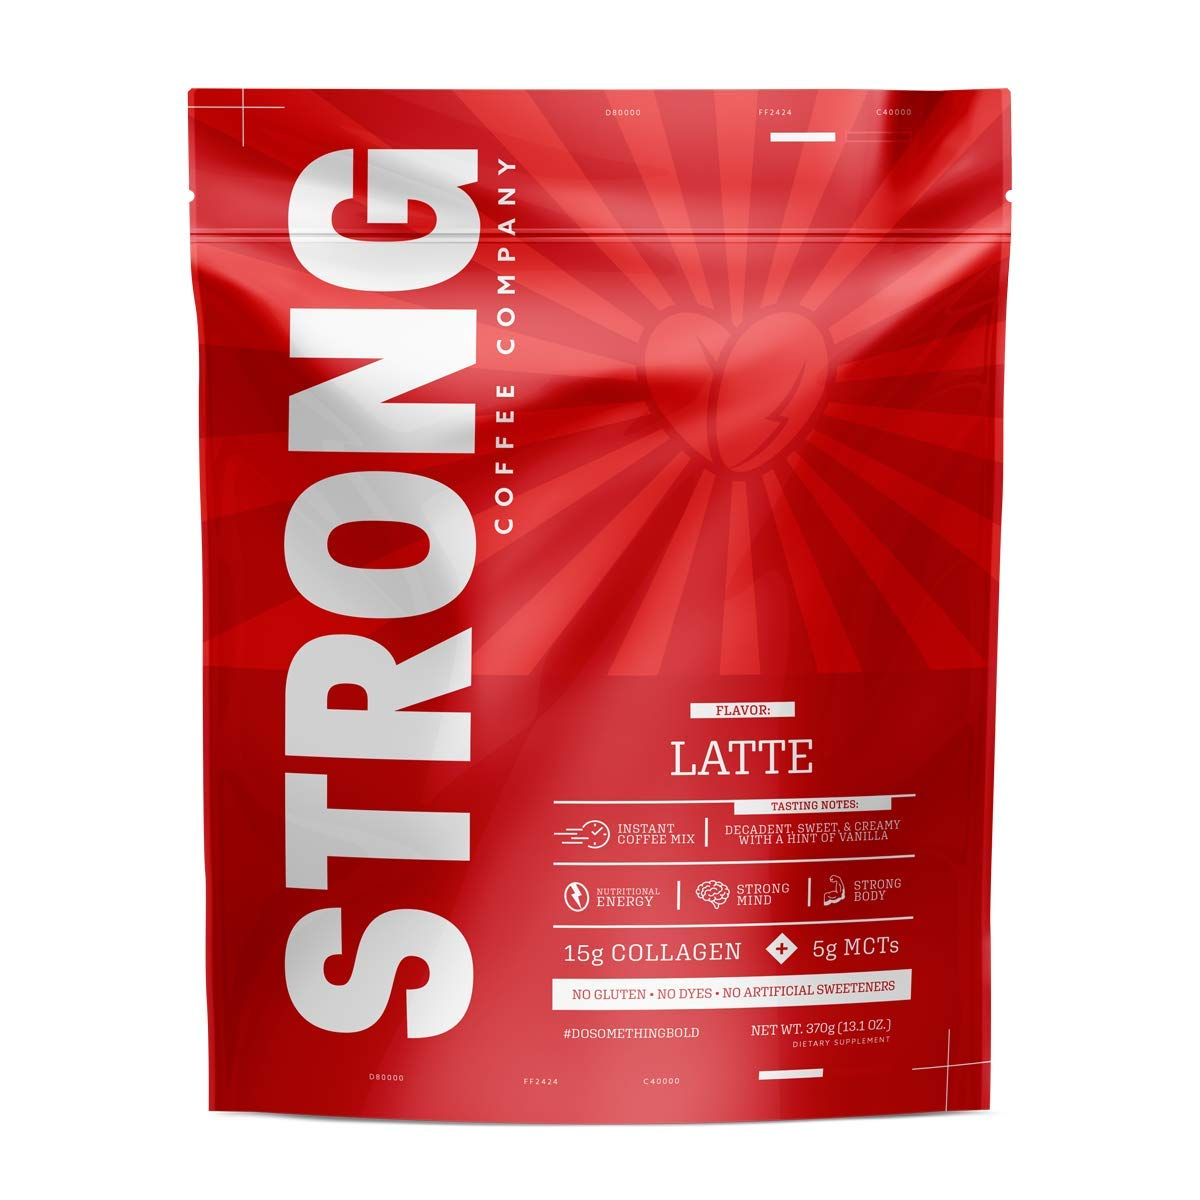 STRONG COFFEE COMPANY | PREMIUM INSTANT COFFEE from the Whole Coffee Bean. Loaded with Antioxidants, Collagen, MCT, L-Theanine, L-Tryptophan, Hyaluronic Acid: No Crash (Caffè Latte, 12 Servings)